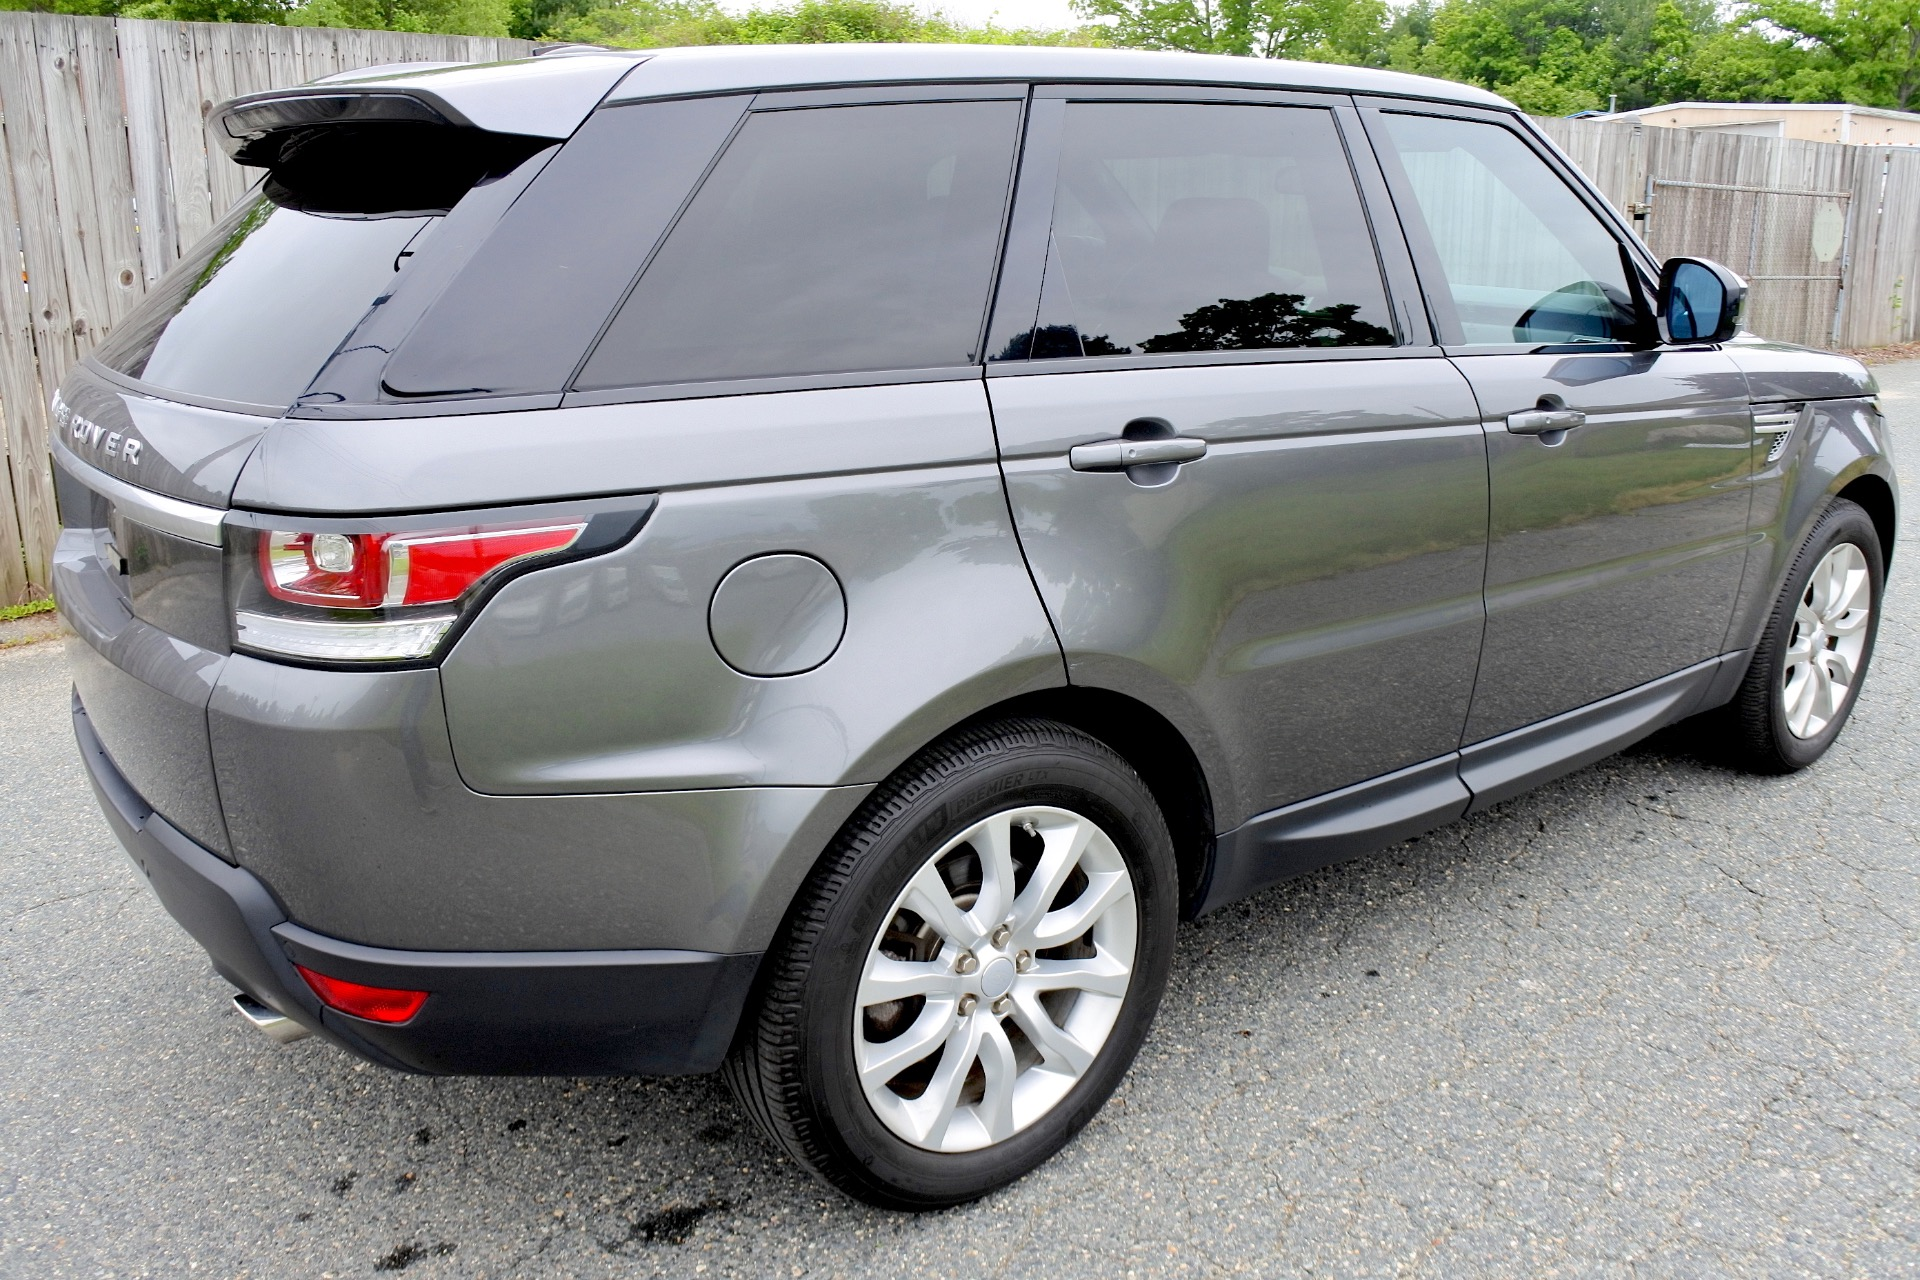 Used 2015 Land Rover Range Rover Sport 4WD 4dr HSE Used 2015 Land Rover Range Rover Sport 4WD 4dr HSE for sale  at Metro West Motorcars LLC in Shrewsbury MA 5